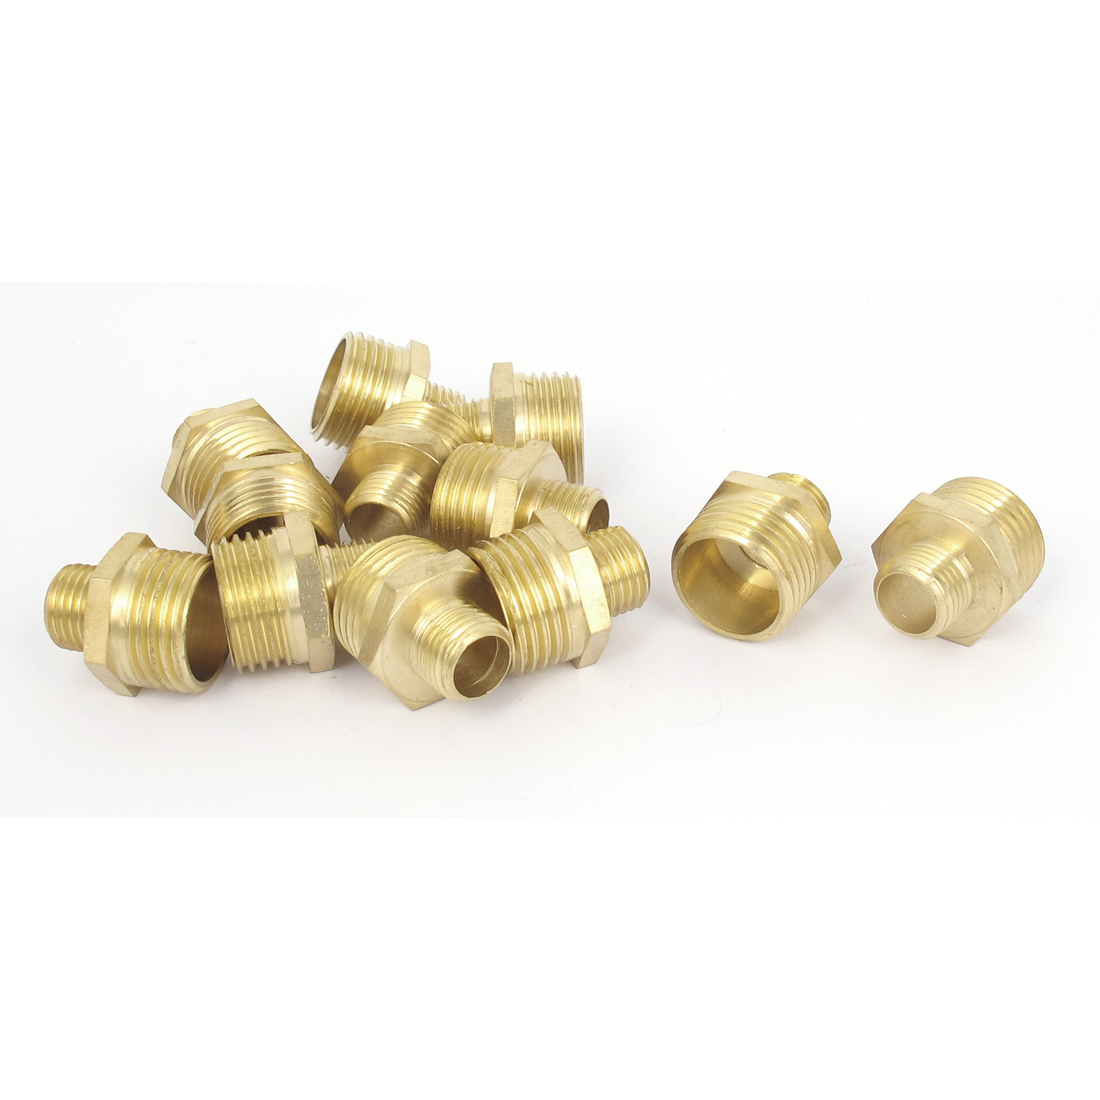 "12pcs 1/2"" to 3/4"" Male Thread Hex Reducing Nipple Connector Brass Fittings"